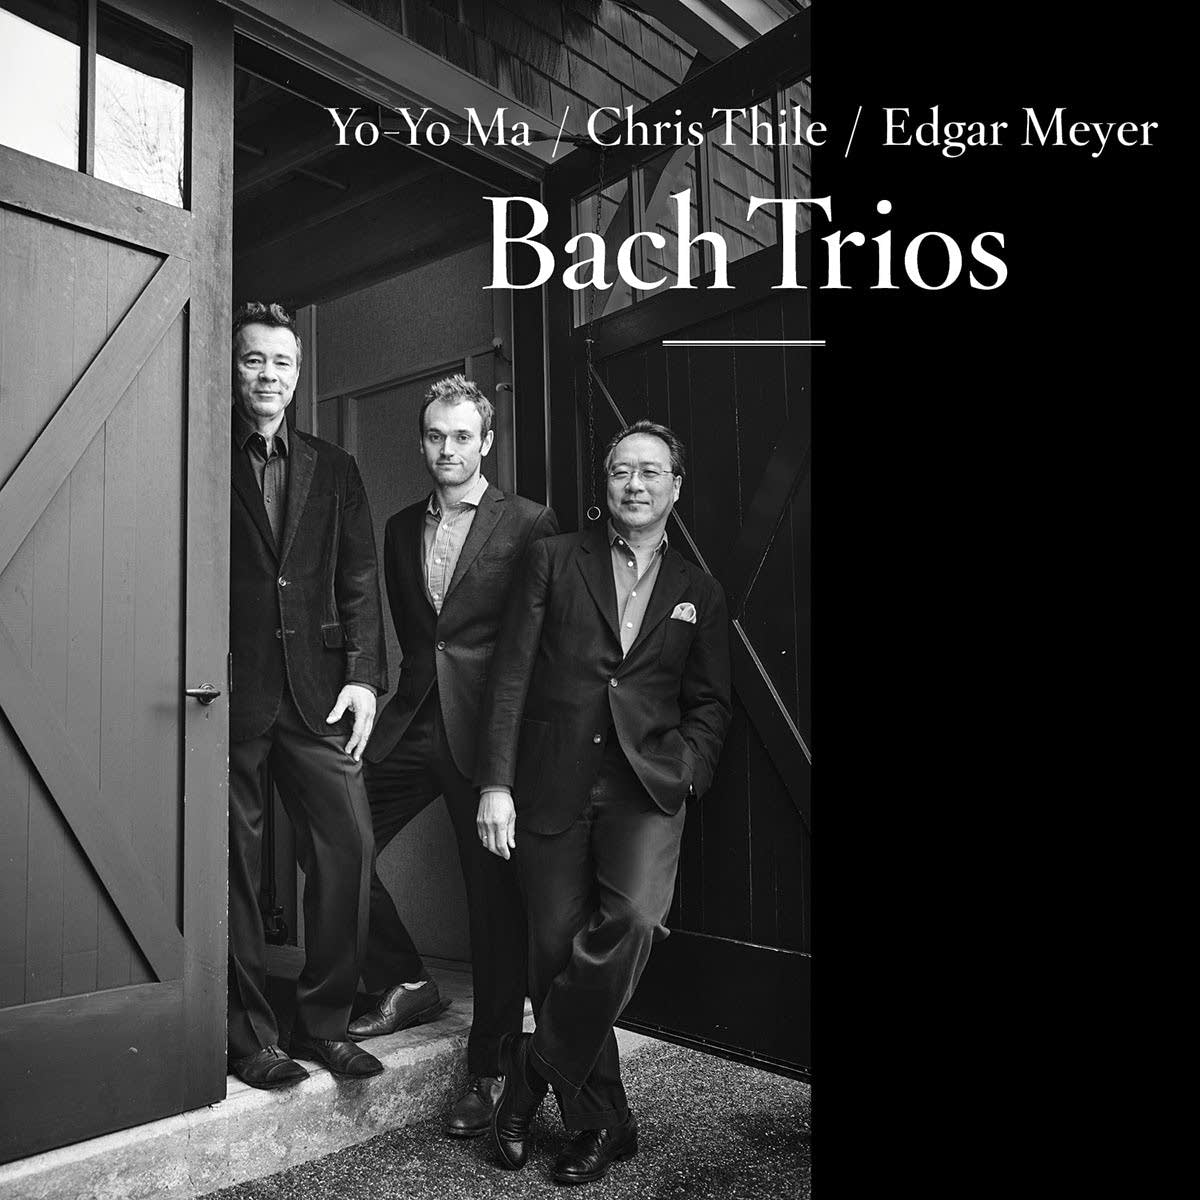 Yo-Yo Ma, Chris Thile, Edgar Meyer: Bach Trios